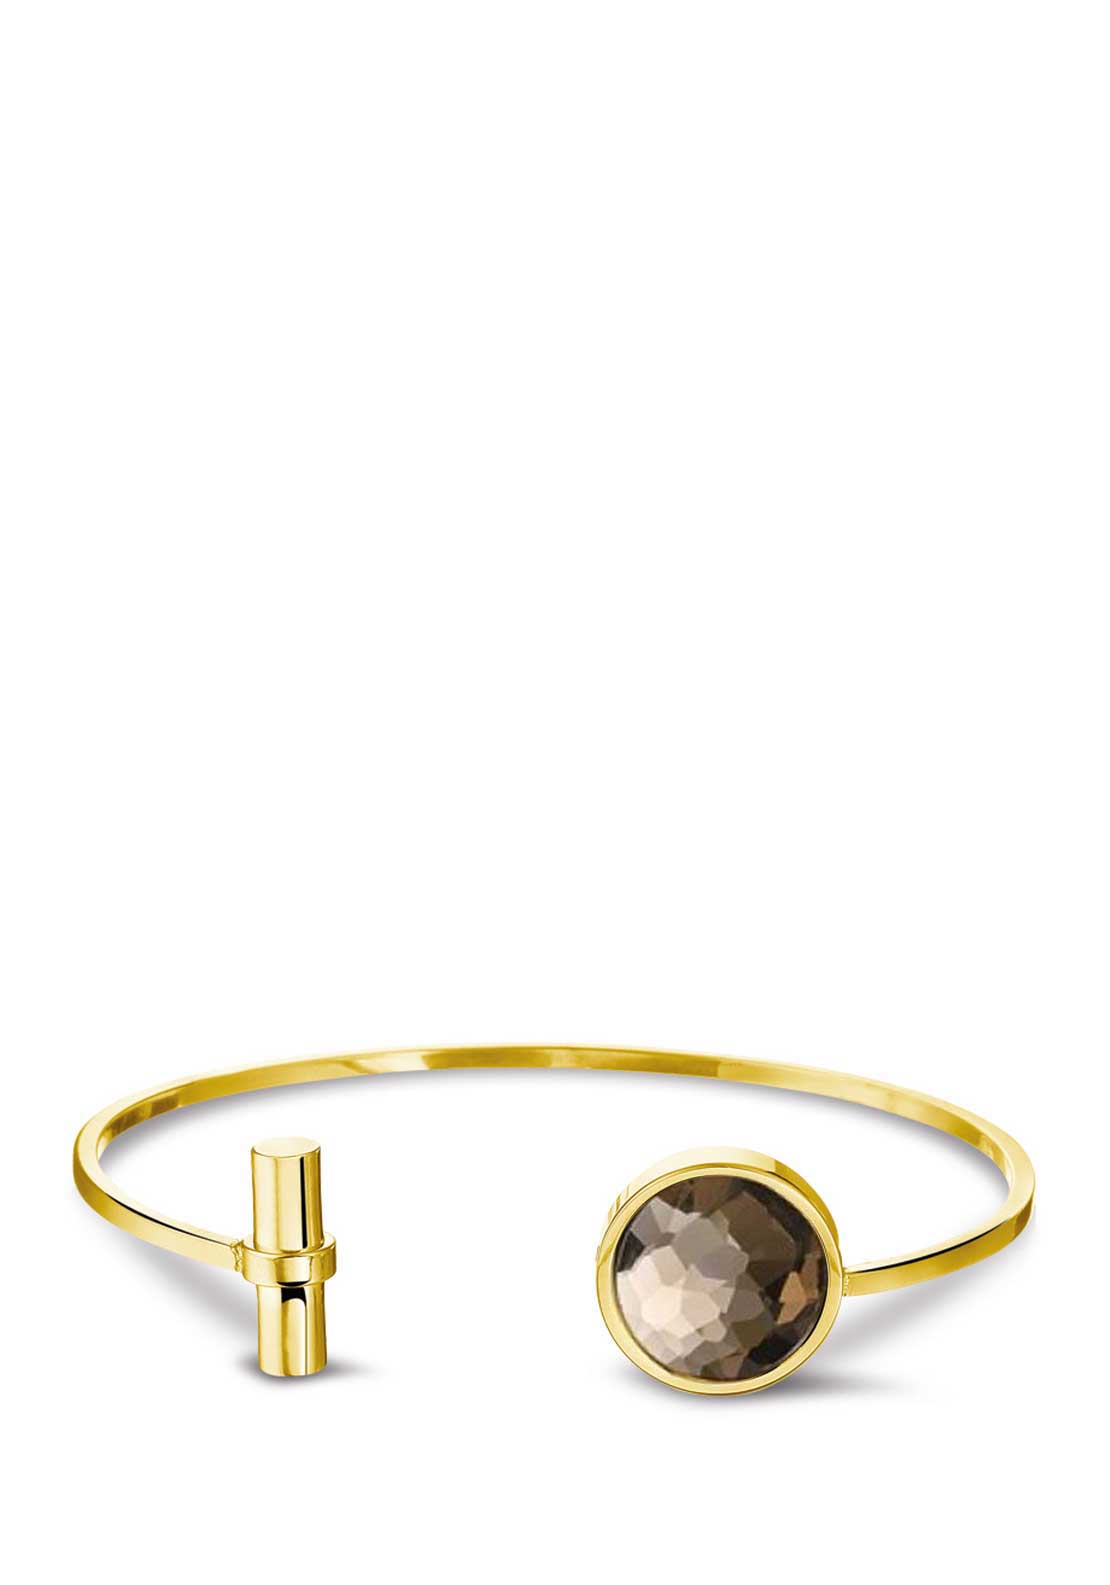 Mi Moneda Dolce Champagne Coloured Bracelet, Gold